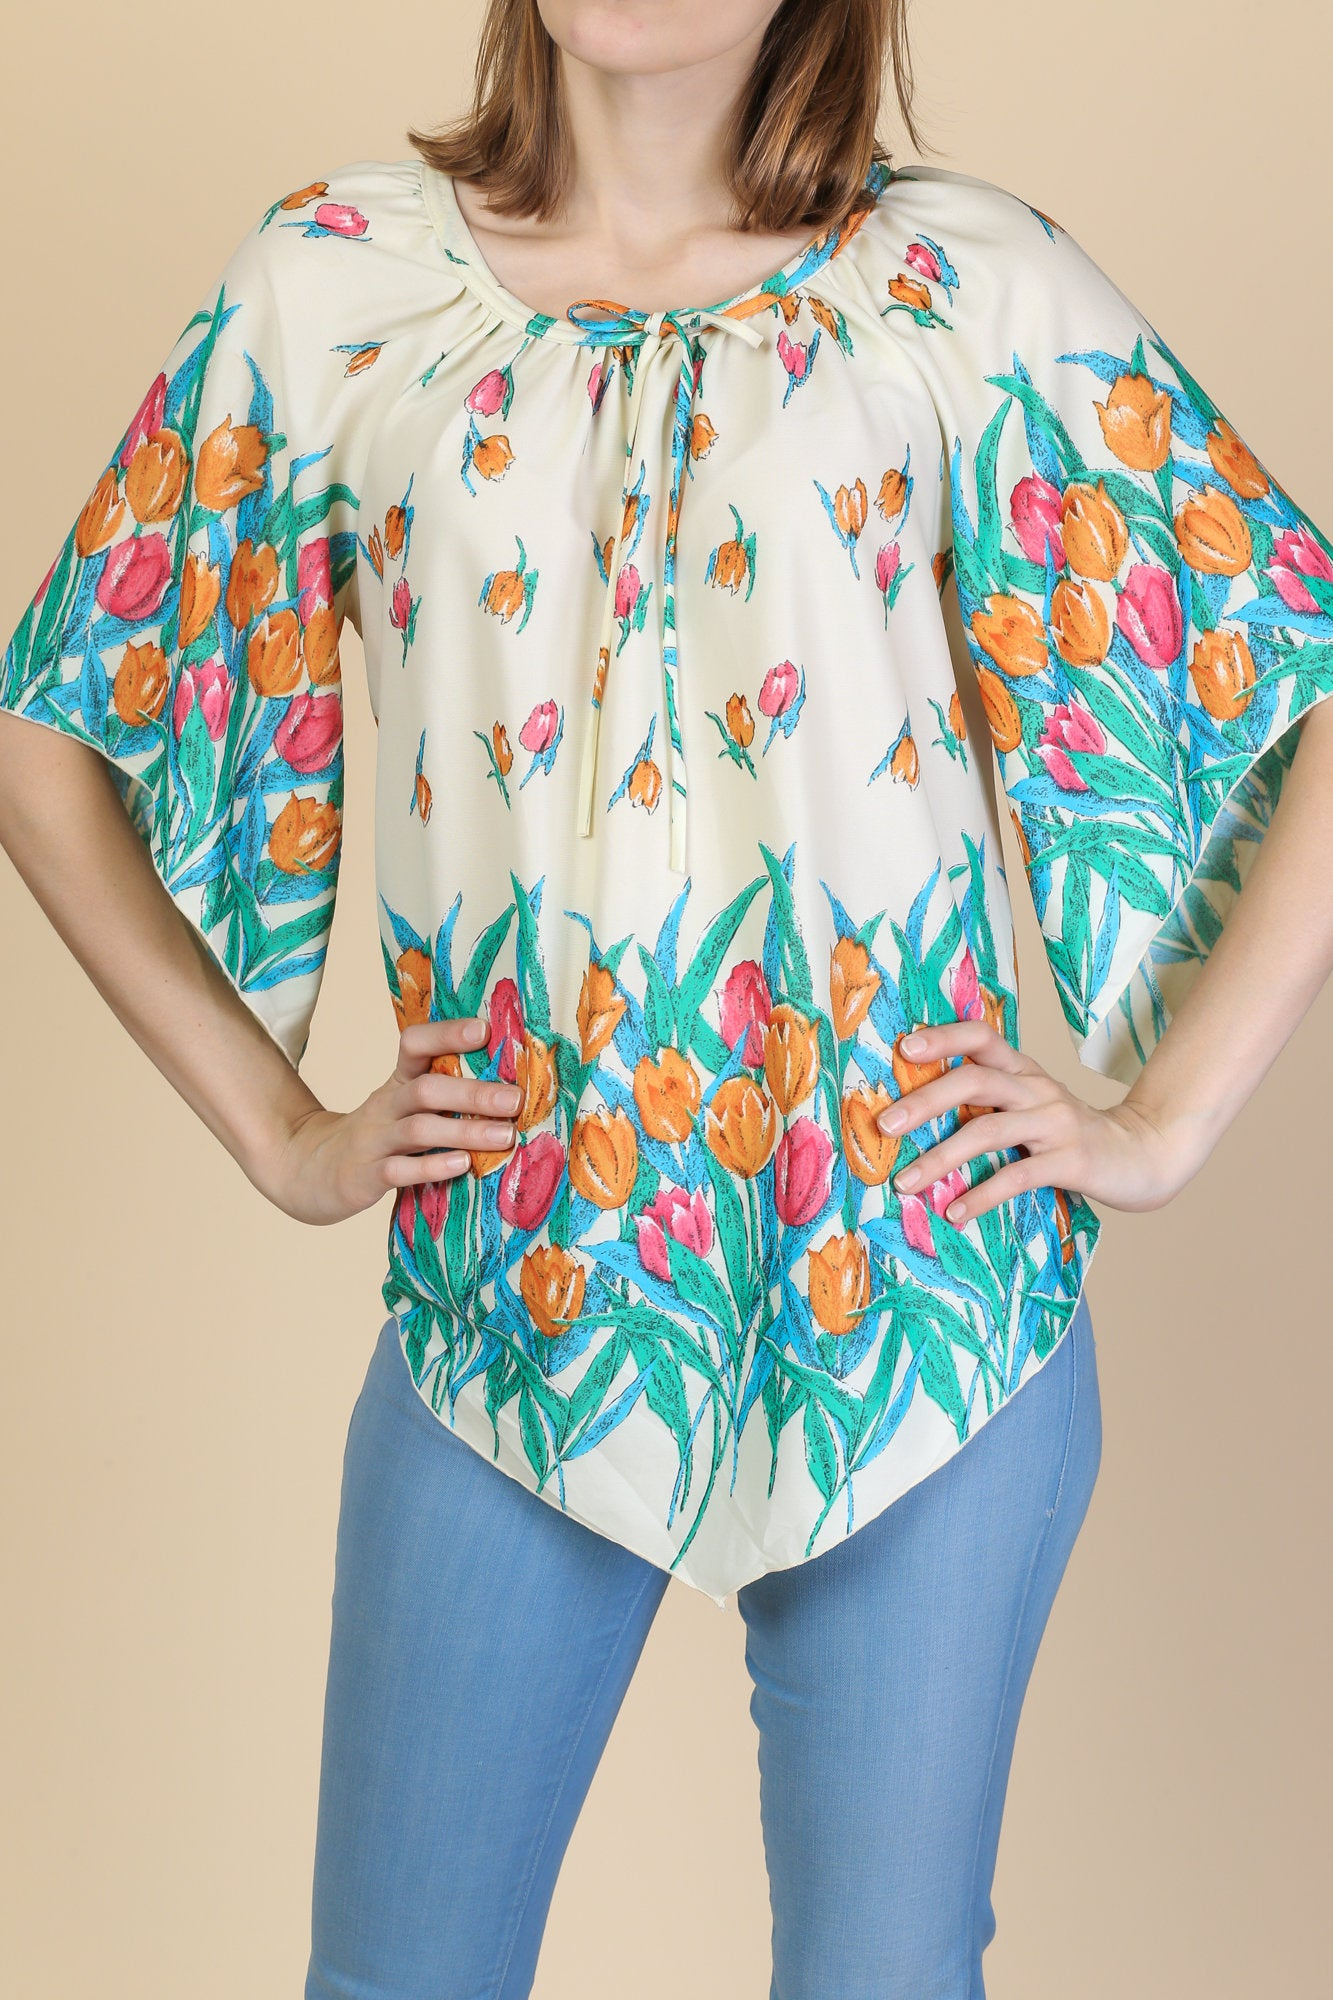 70s Scarf Hem Floral Blouse - Medium to Large